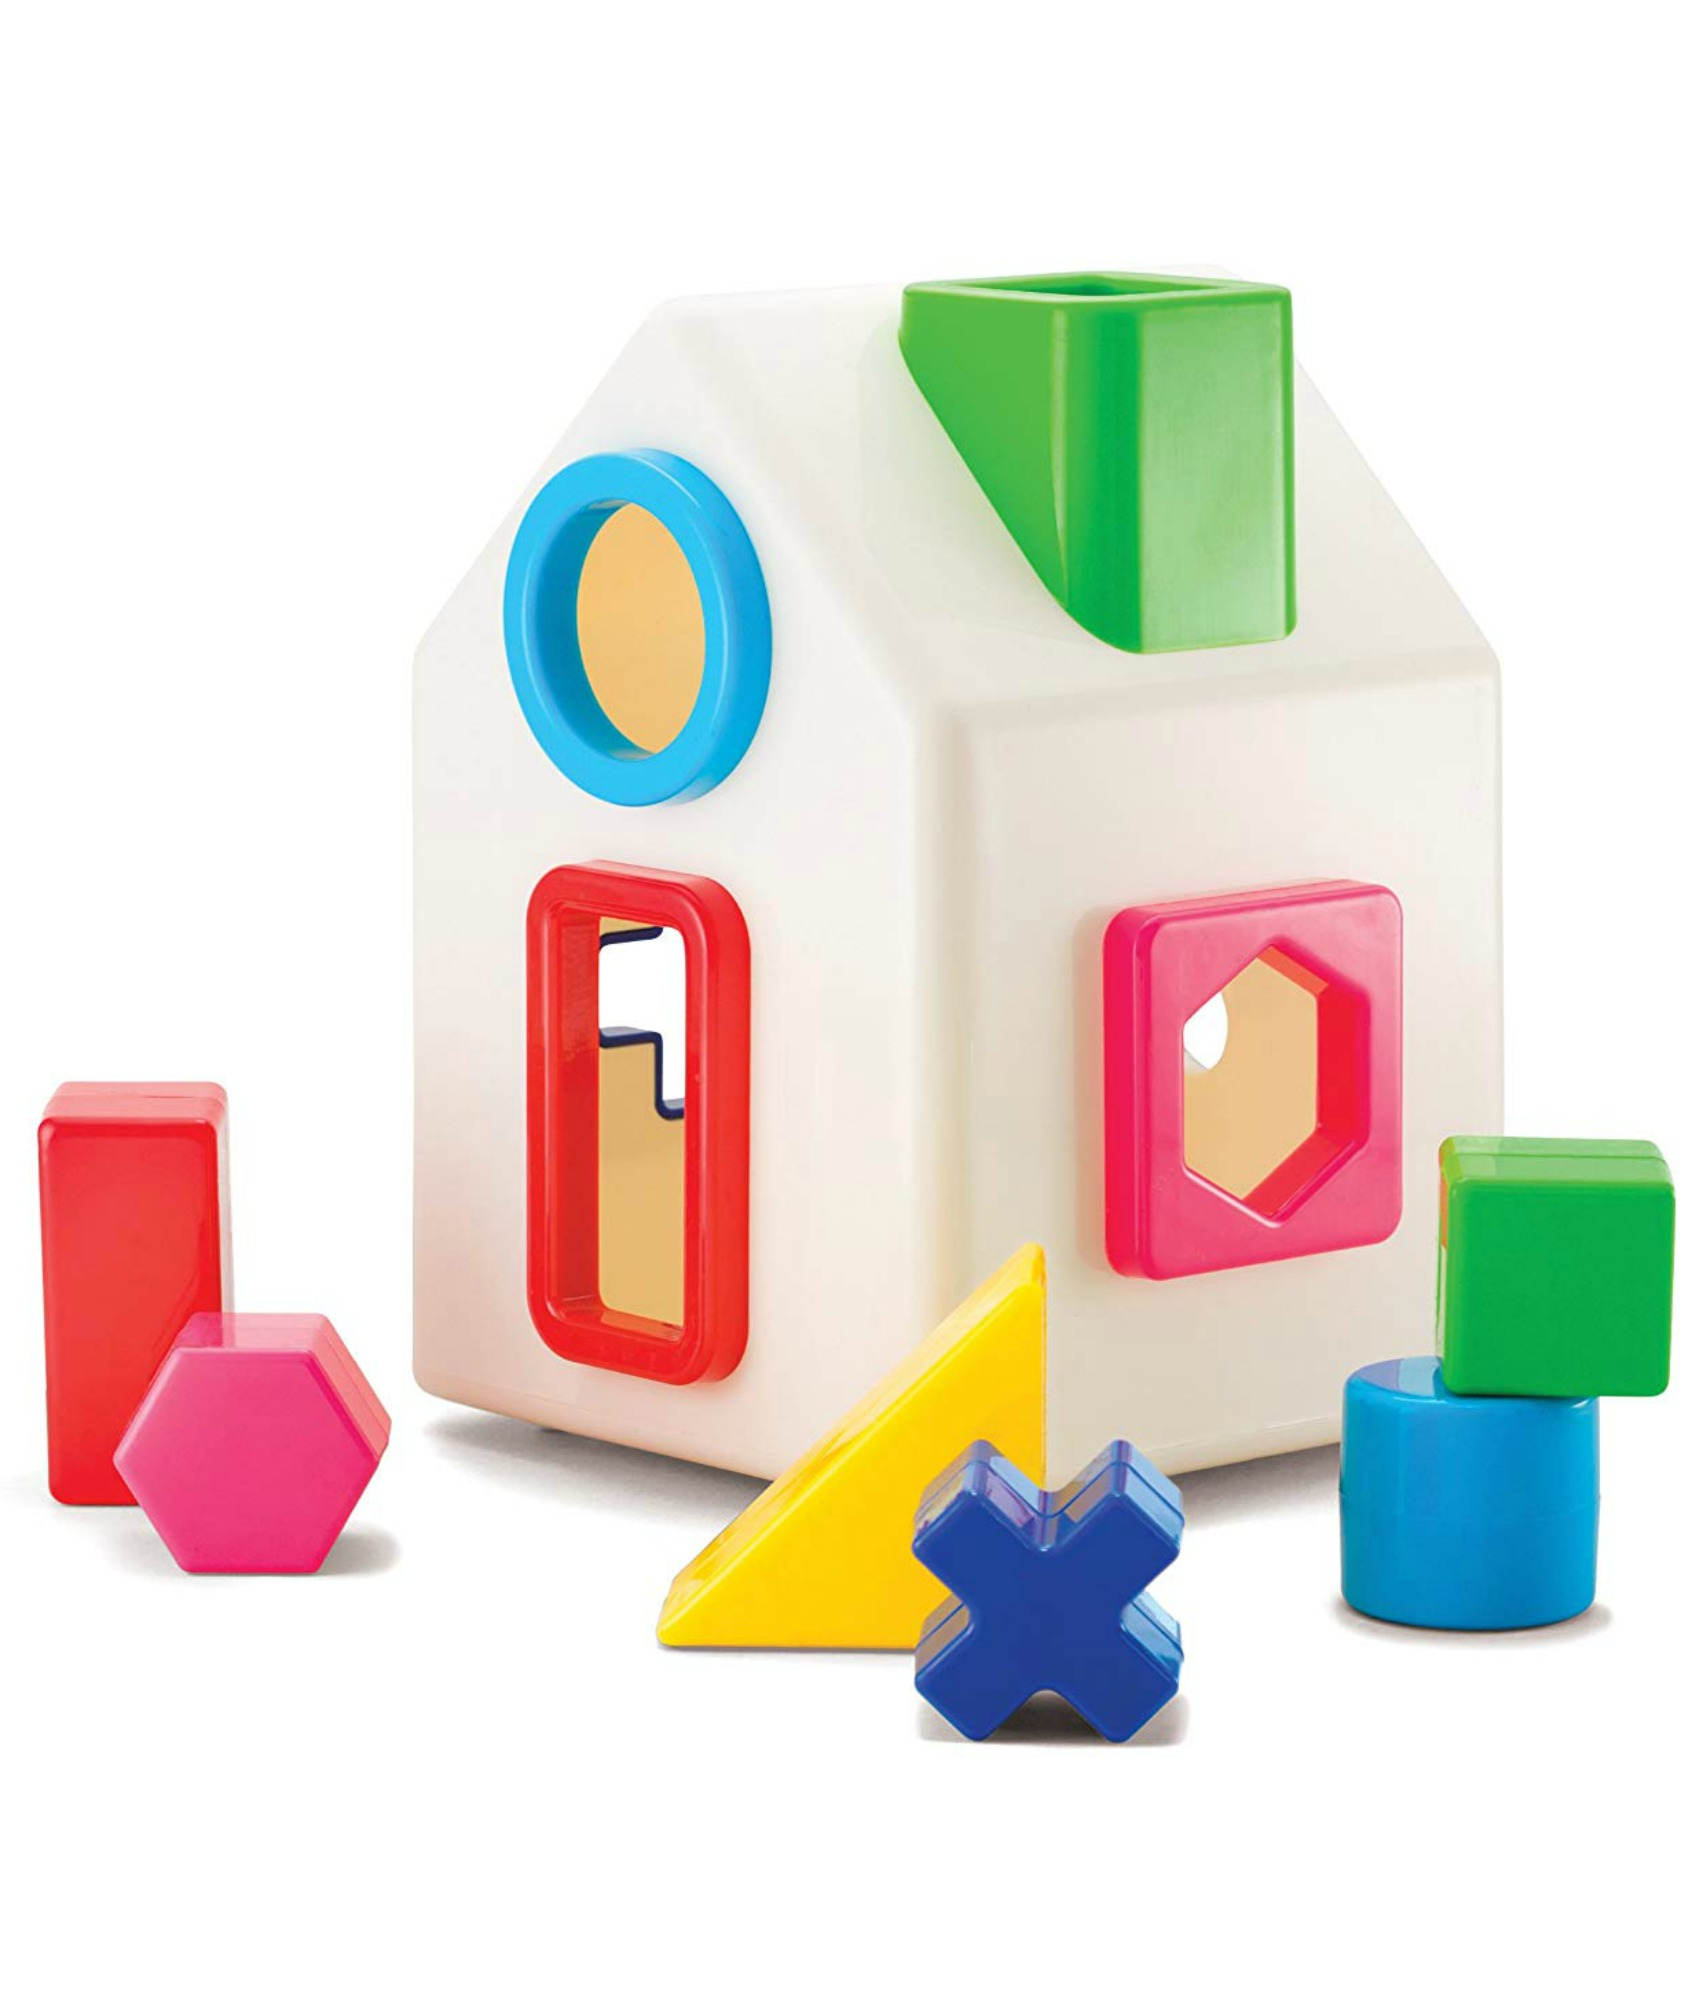 Shape-sorting house by Kid O | The Coolest First Birthday Gifts